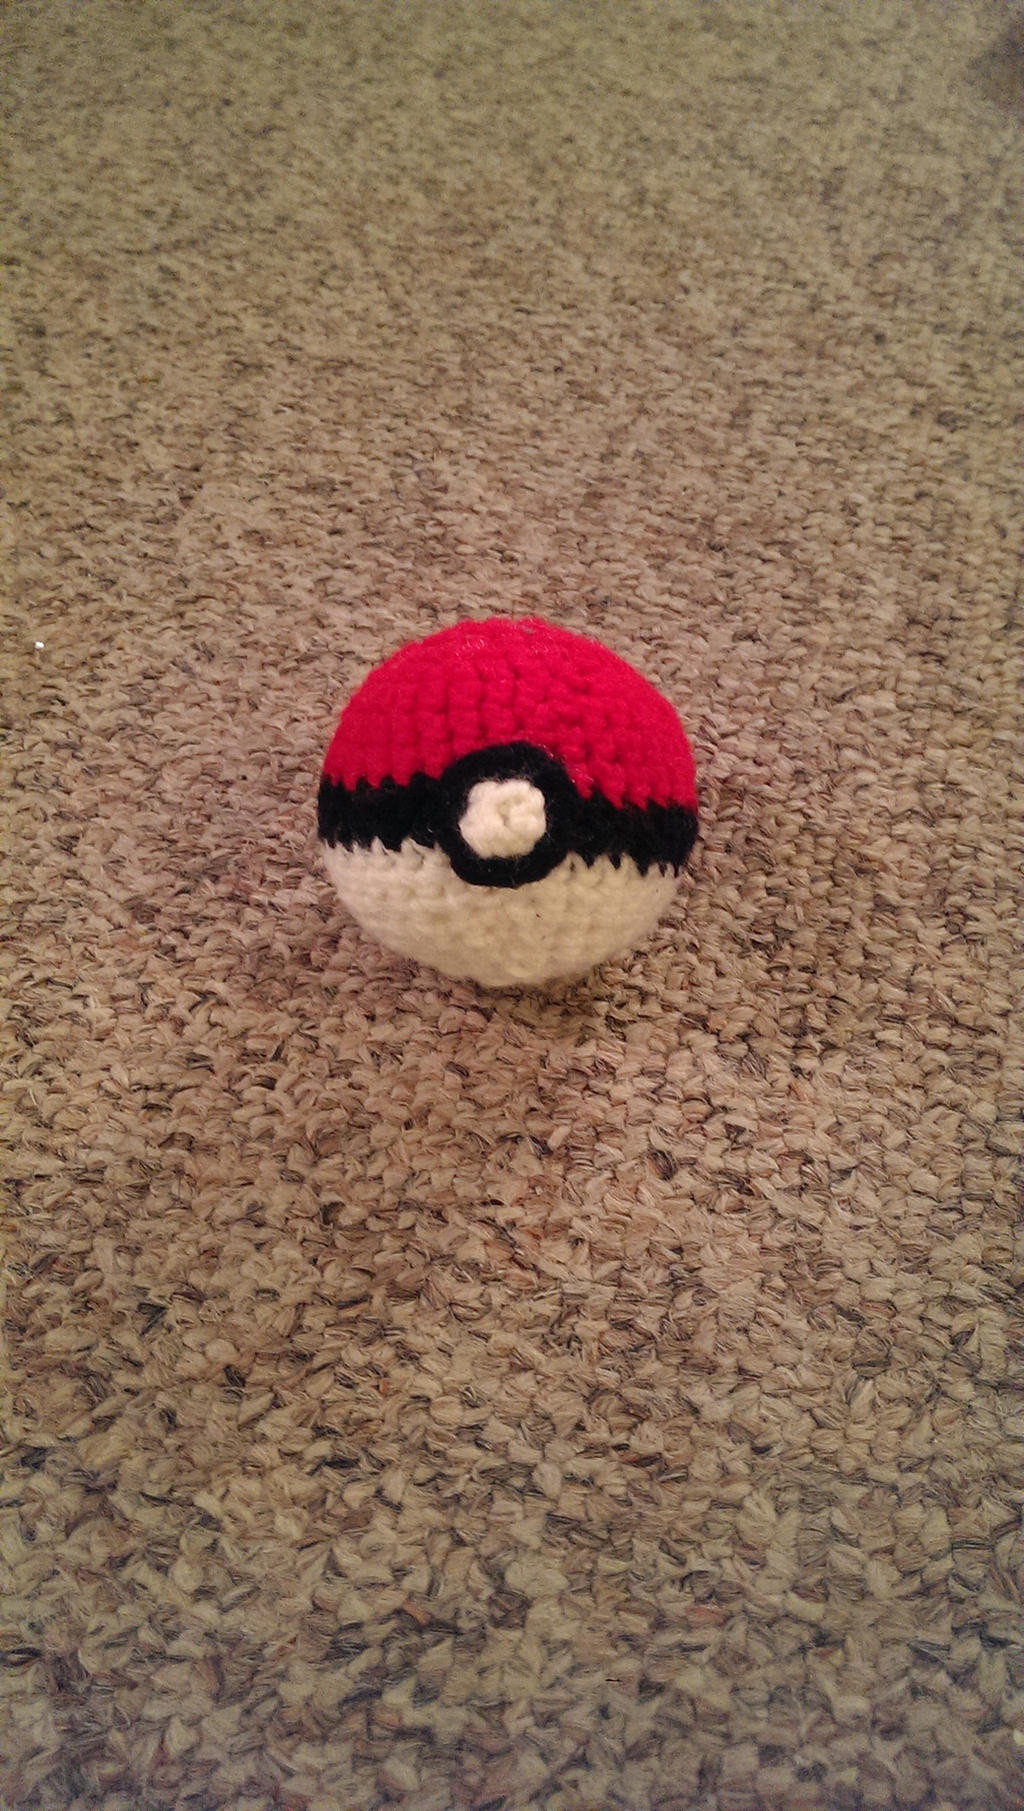 Pokeball Amigurumi - Complete by Wykked-As-Syn on DeviantArt